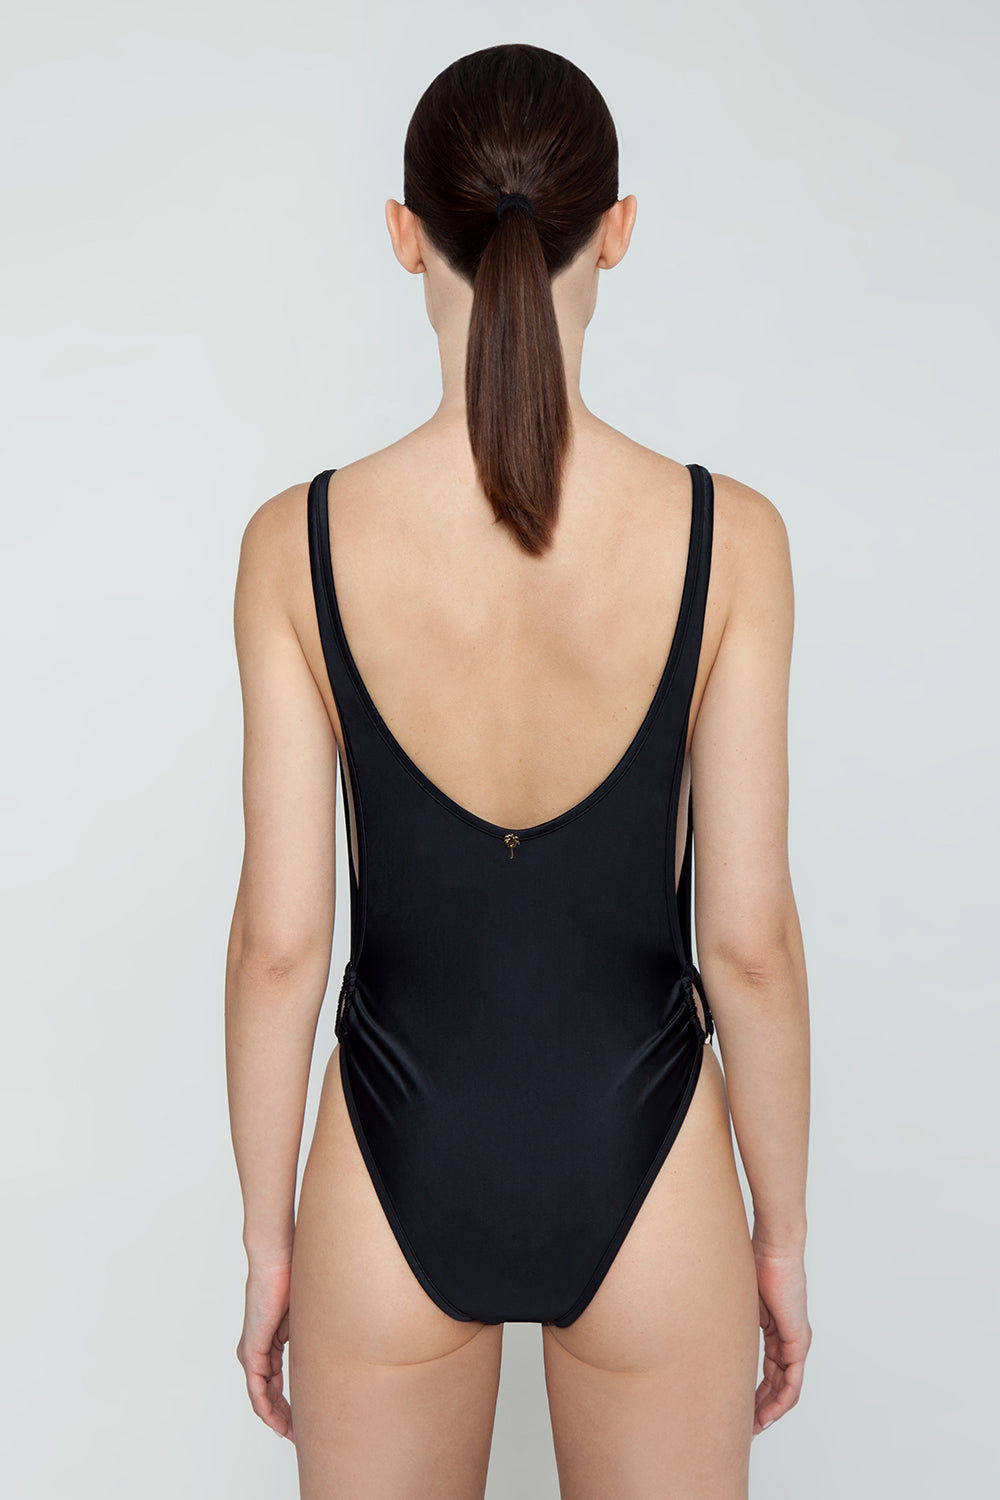 AGUA DE COCO Brazilian Cut Out Ring Sides One Piece Swimsuit - Black One Piece | Black| Agua De Coco Brazilian Cut Out Ring Sides One Piece Swimsuit - Black Black one piece Scoop neckline  Side boob exposure  High cut leg  Side ring hardware detail  Cheeky coverage Back View